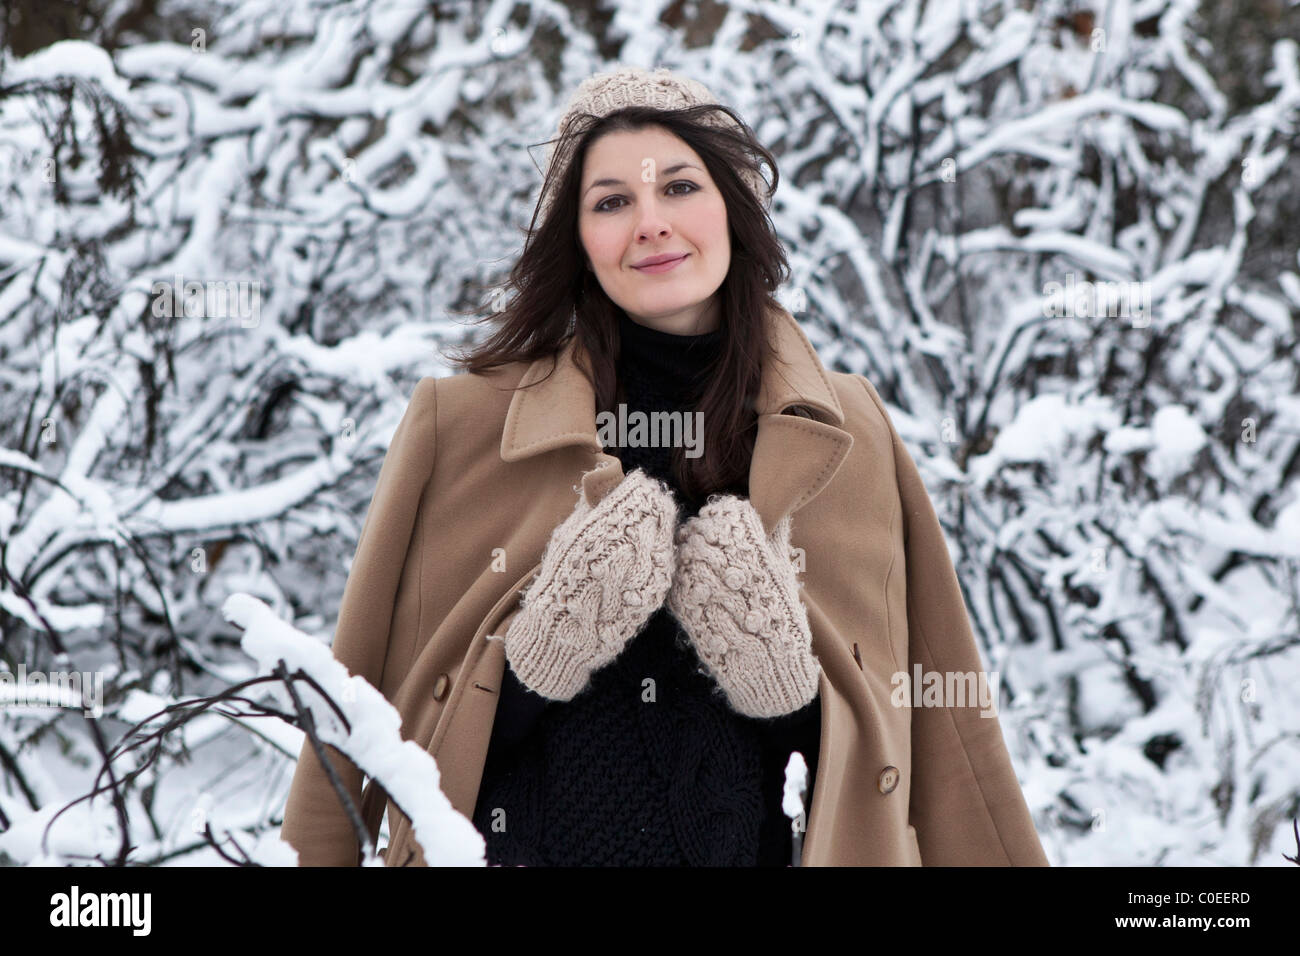 Portrait of a young woman in the snow Stock Photo